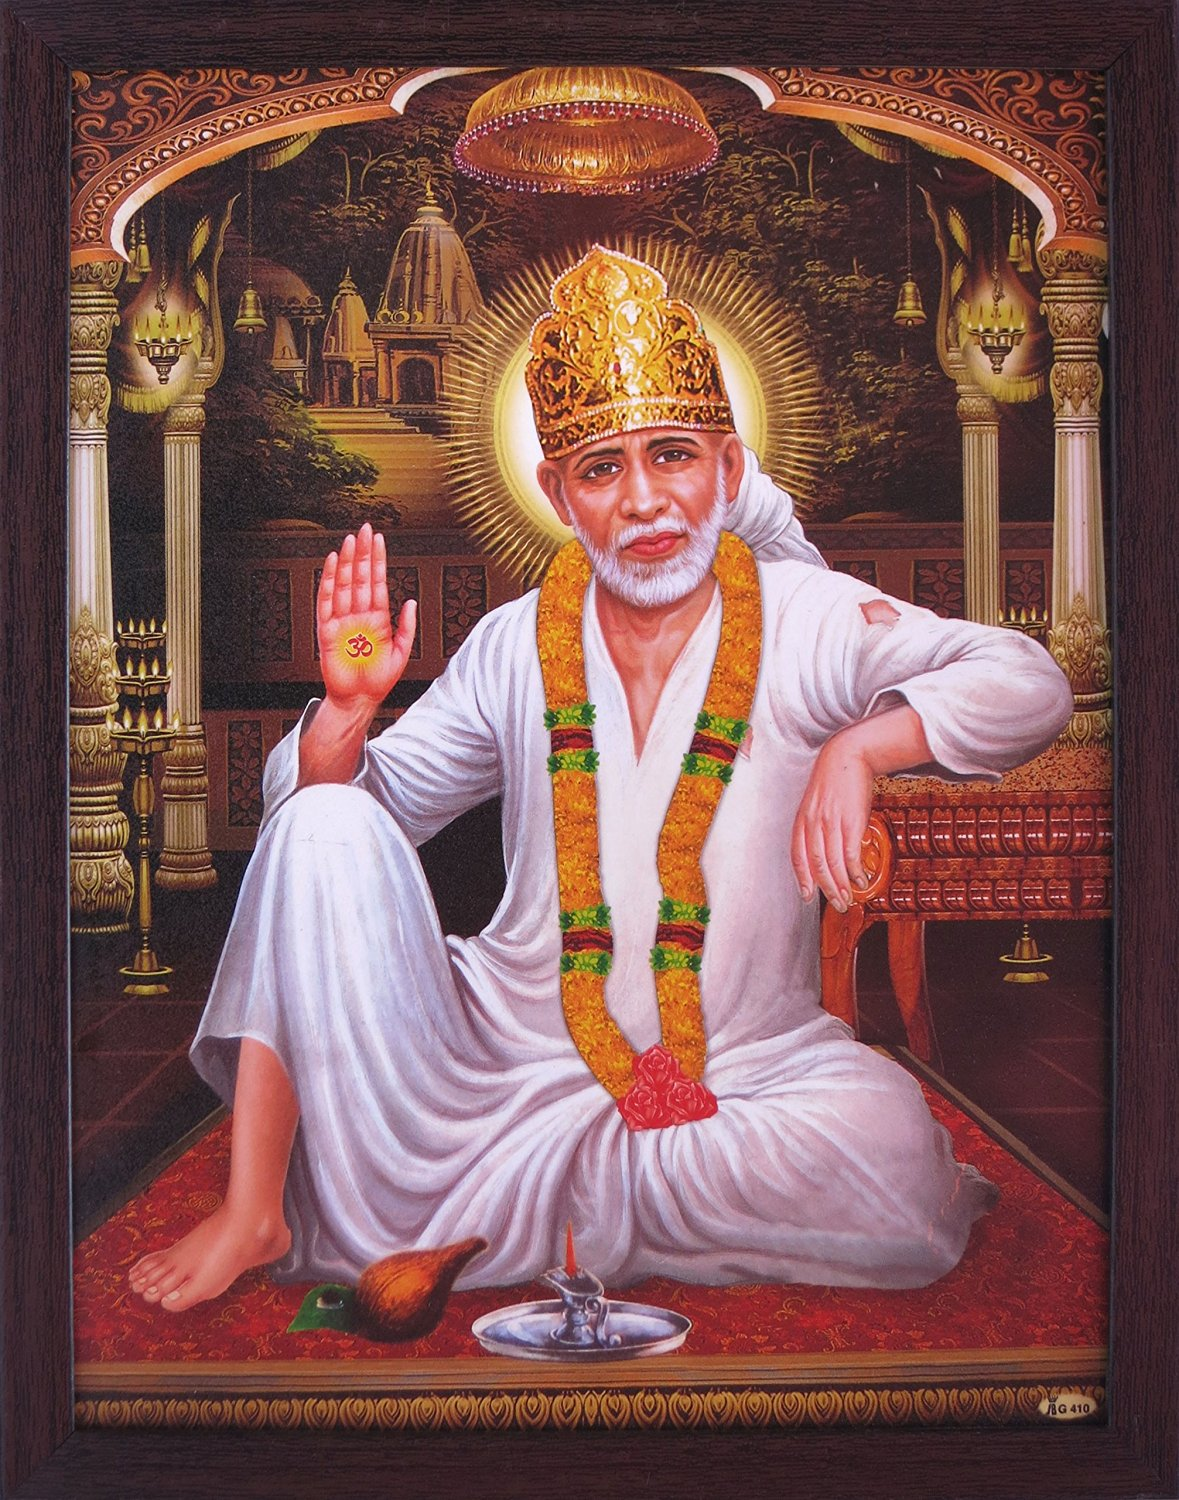 Hindu Lord Sai Baba with Om Symbol Which Is Showing in His Hand and Sitting At a Palace, a Hindu Religious Poster for Home / Offices and Gift Purpose